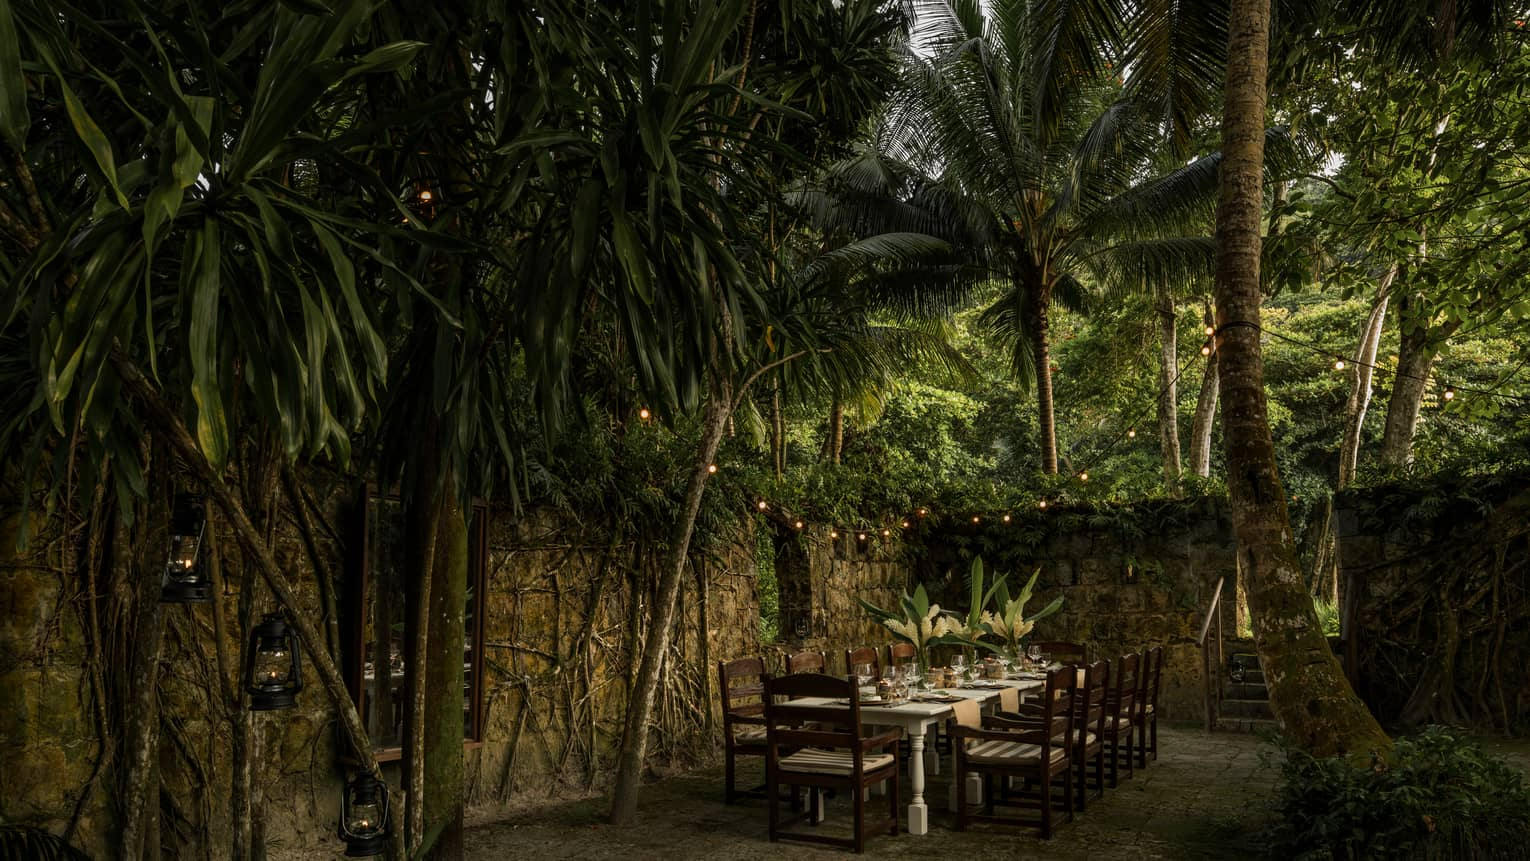 Long dining table with chairs outdoor under palm leaves, near the Foumba Creole ruins at Kannel restaurant